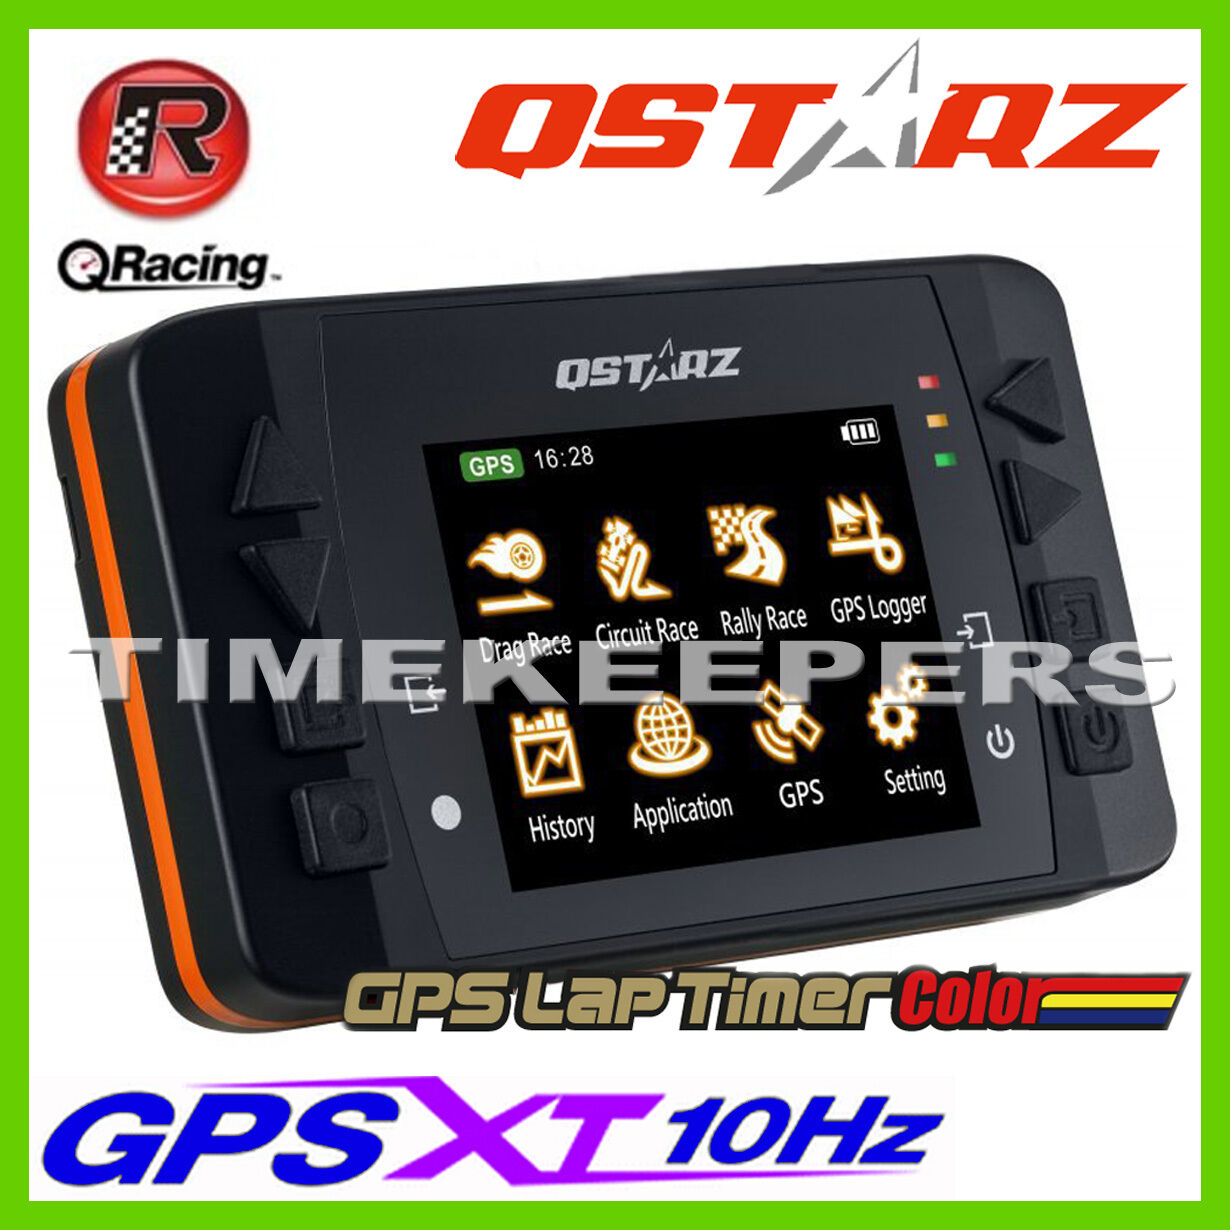 qstarz 2 4 lcd lt q6000s mx 10hz gps data logger racing. Black Bedroom Furniture Sets. Home Design Ideas